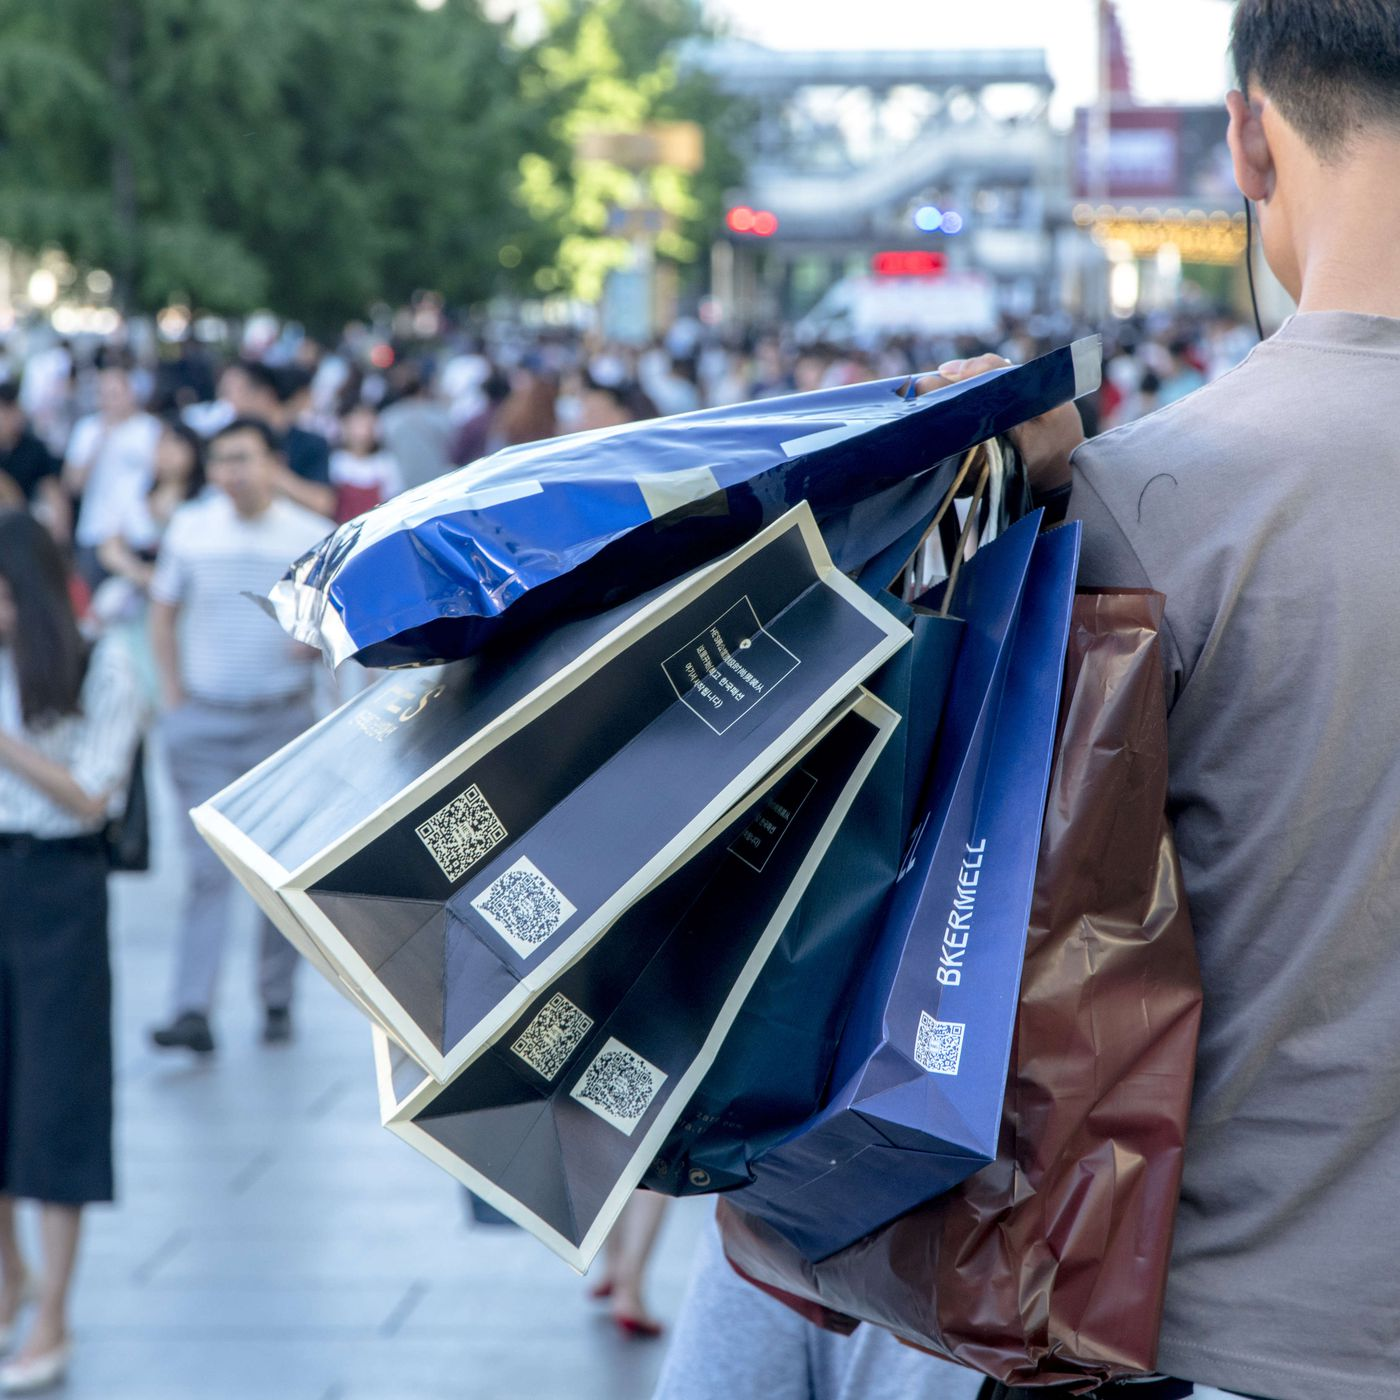 Chinas Social Credit System Penalizes Those Who Spend Frivolously